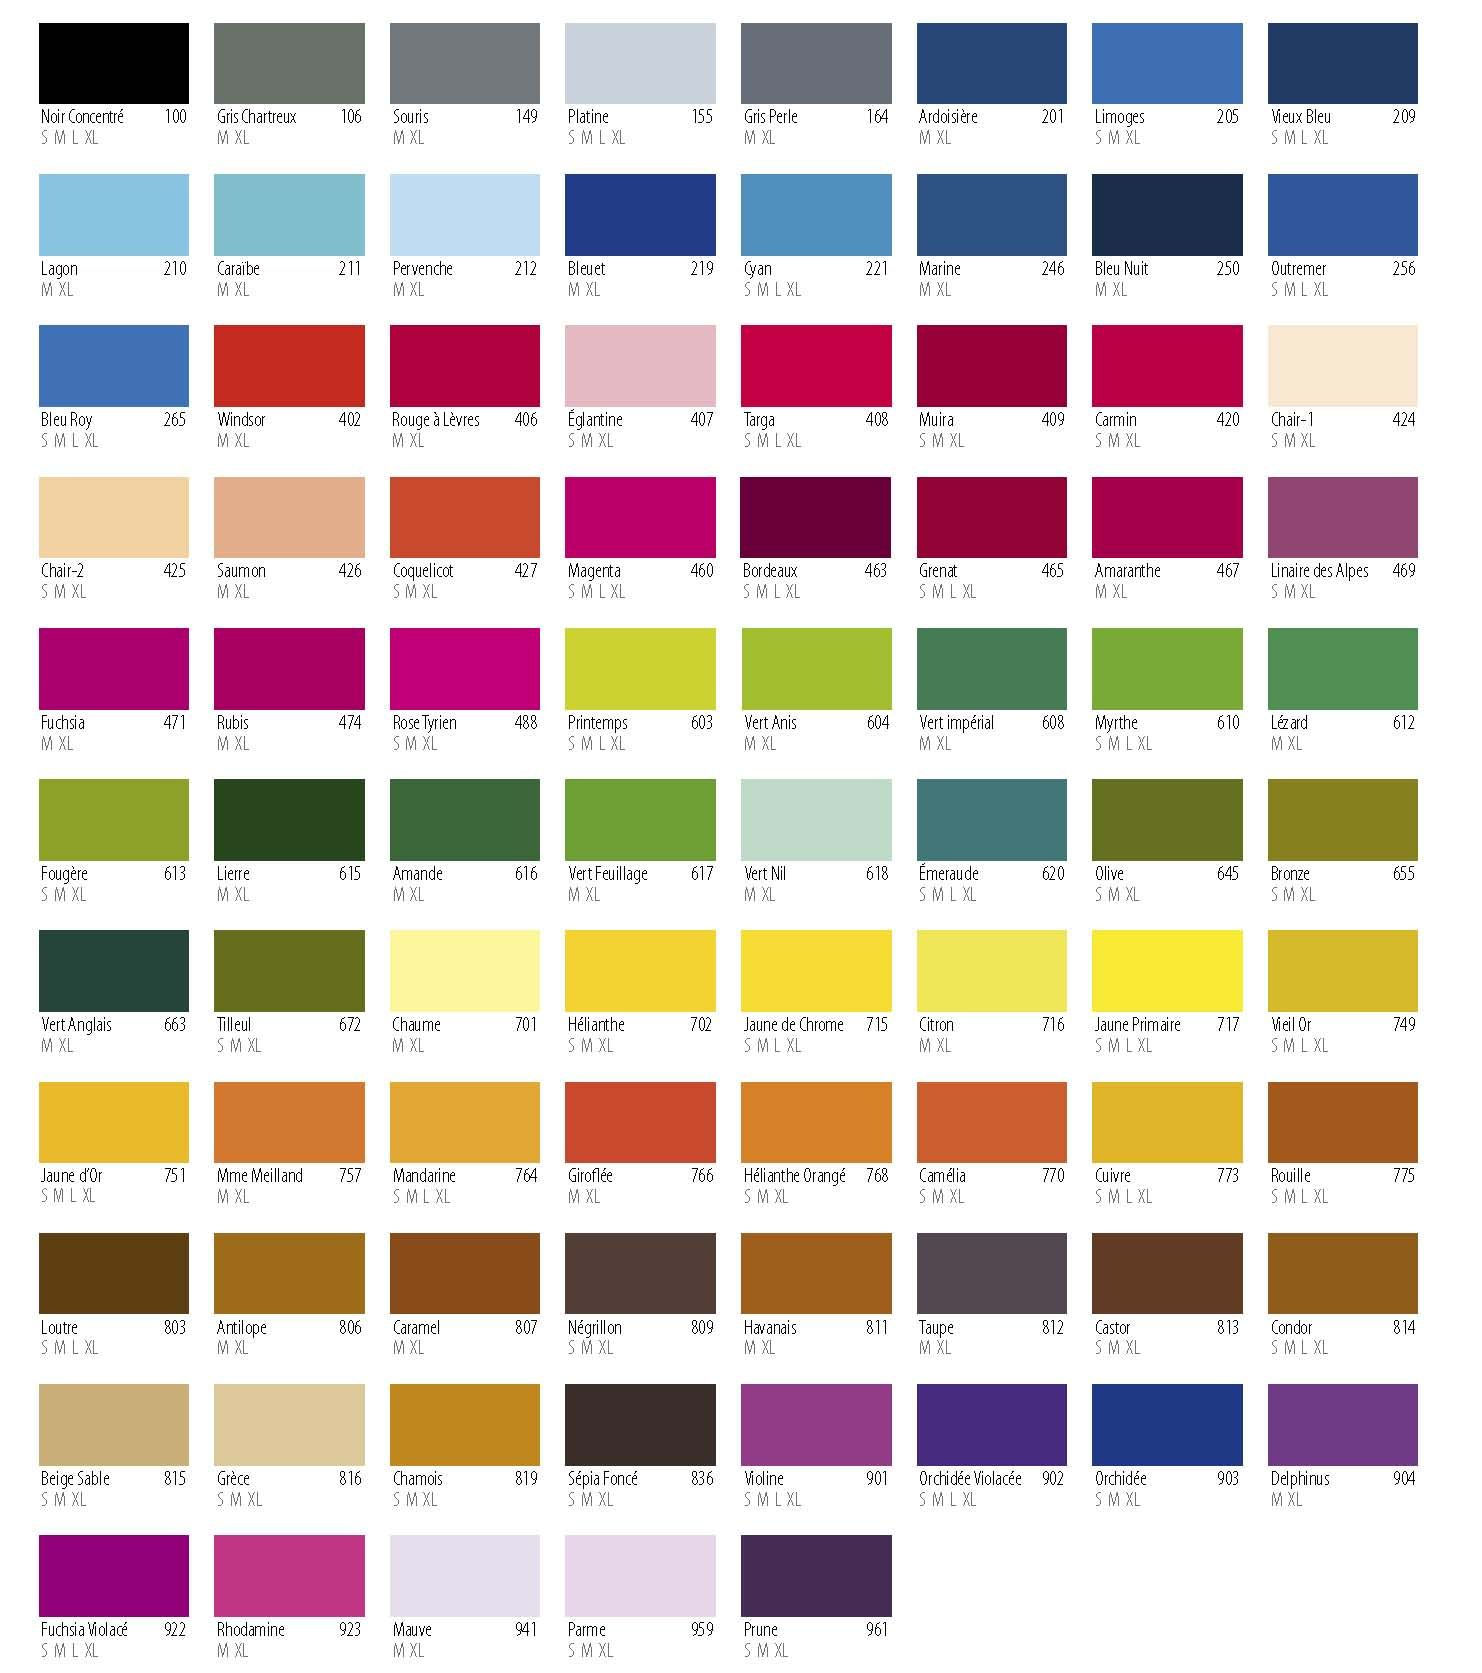 Paint Color For Cars Chart | Carbk co